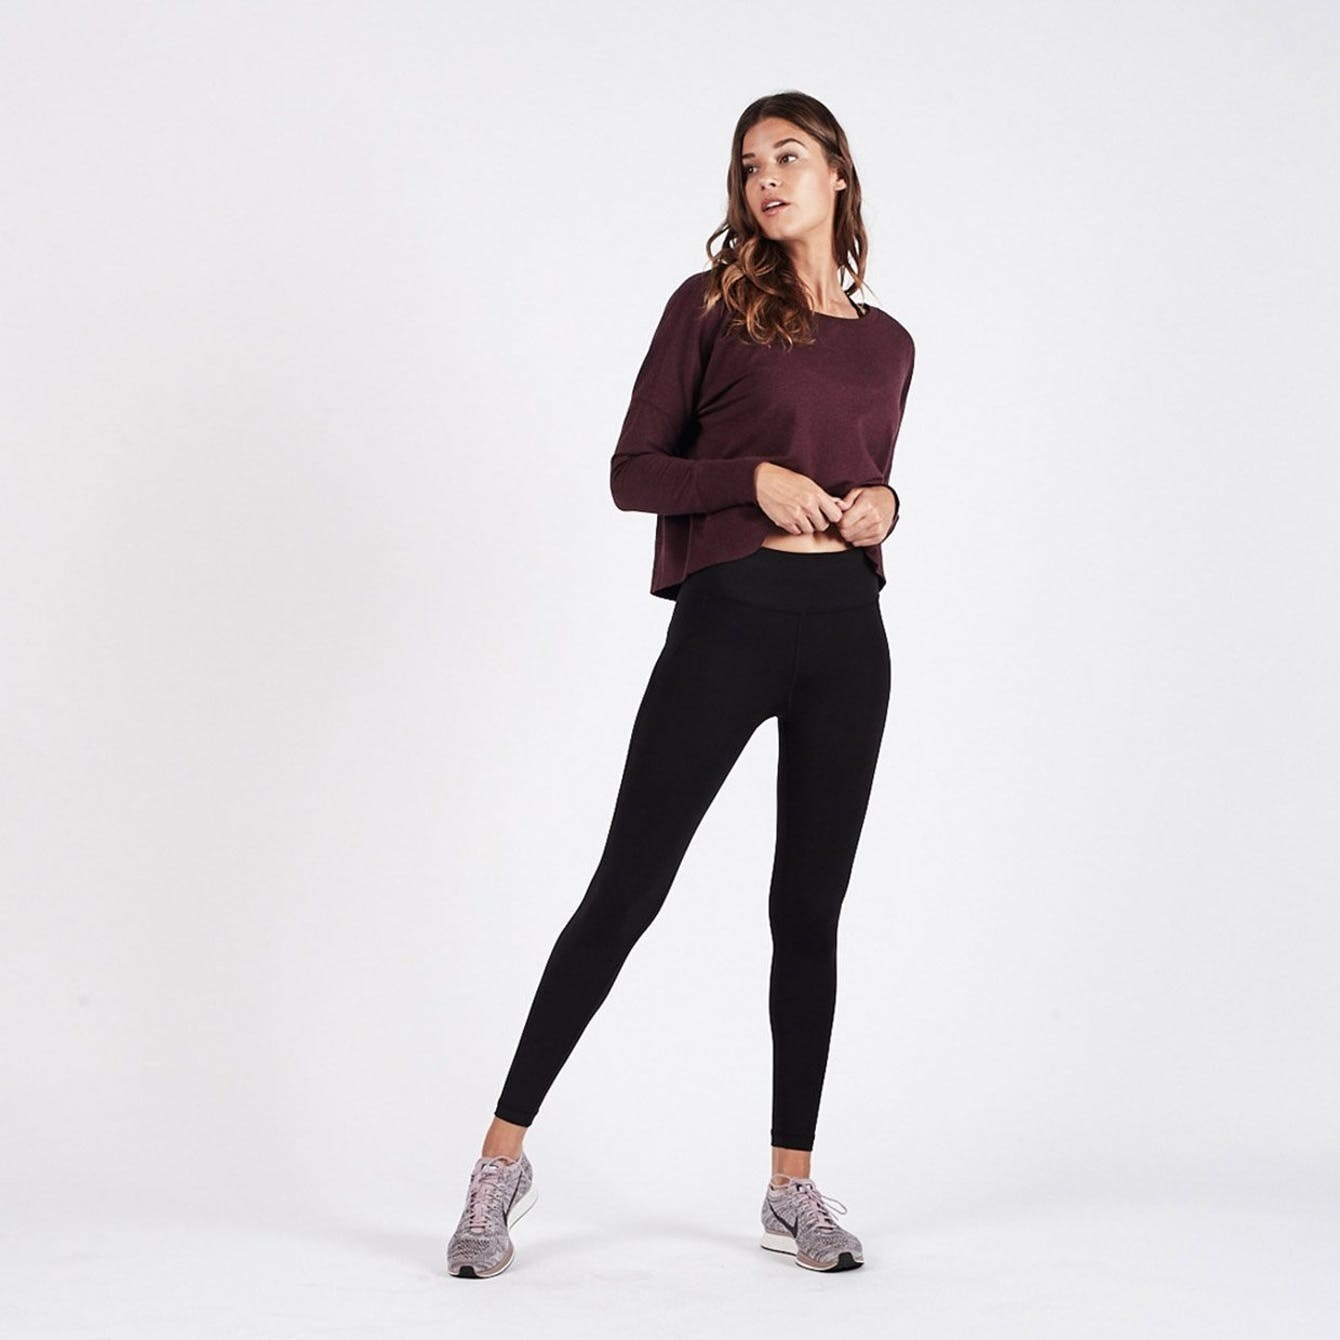 Person wearing high waisted black leggings that hit above ankle